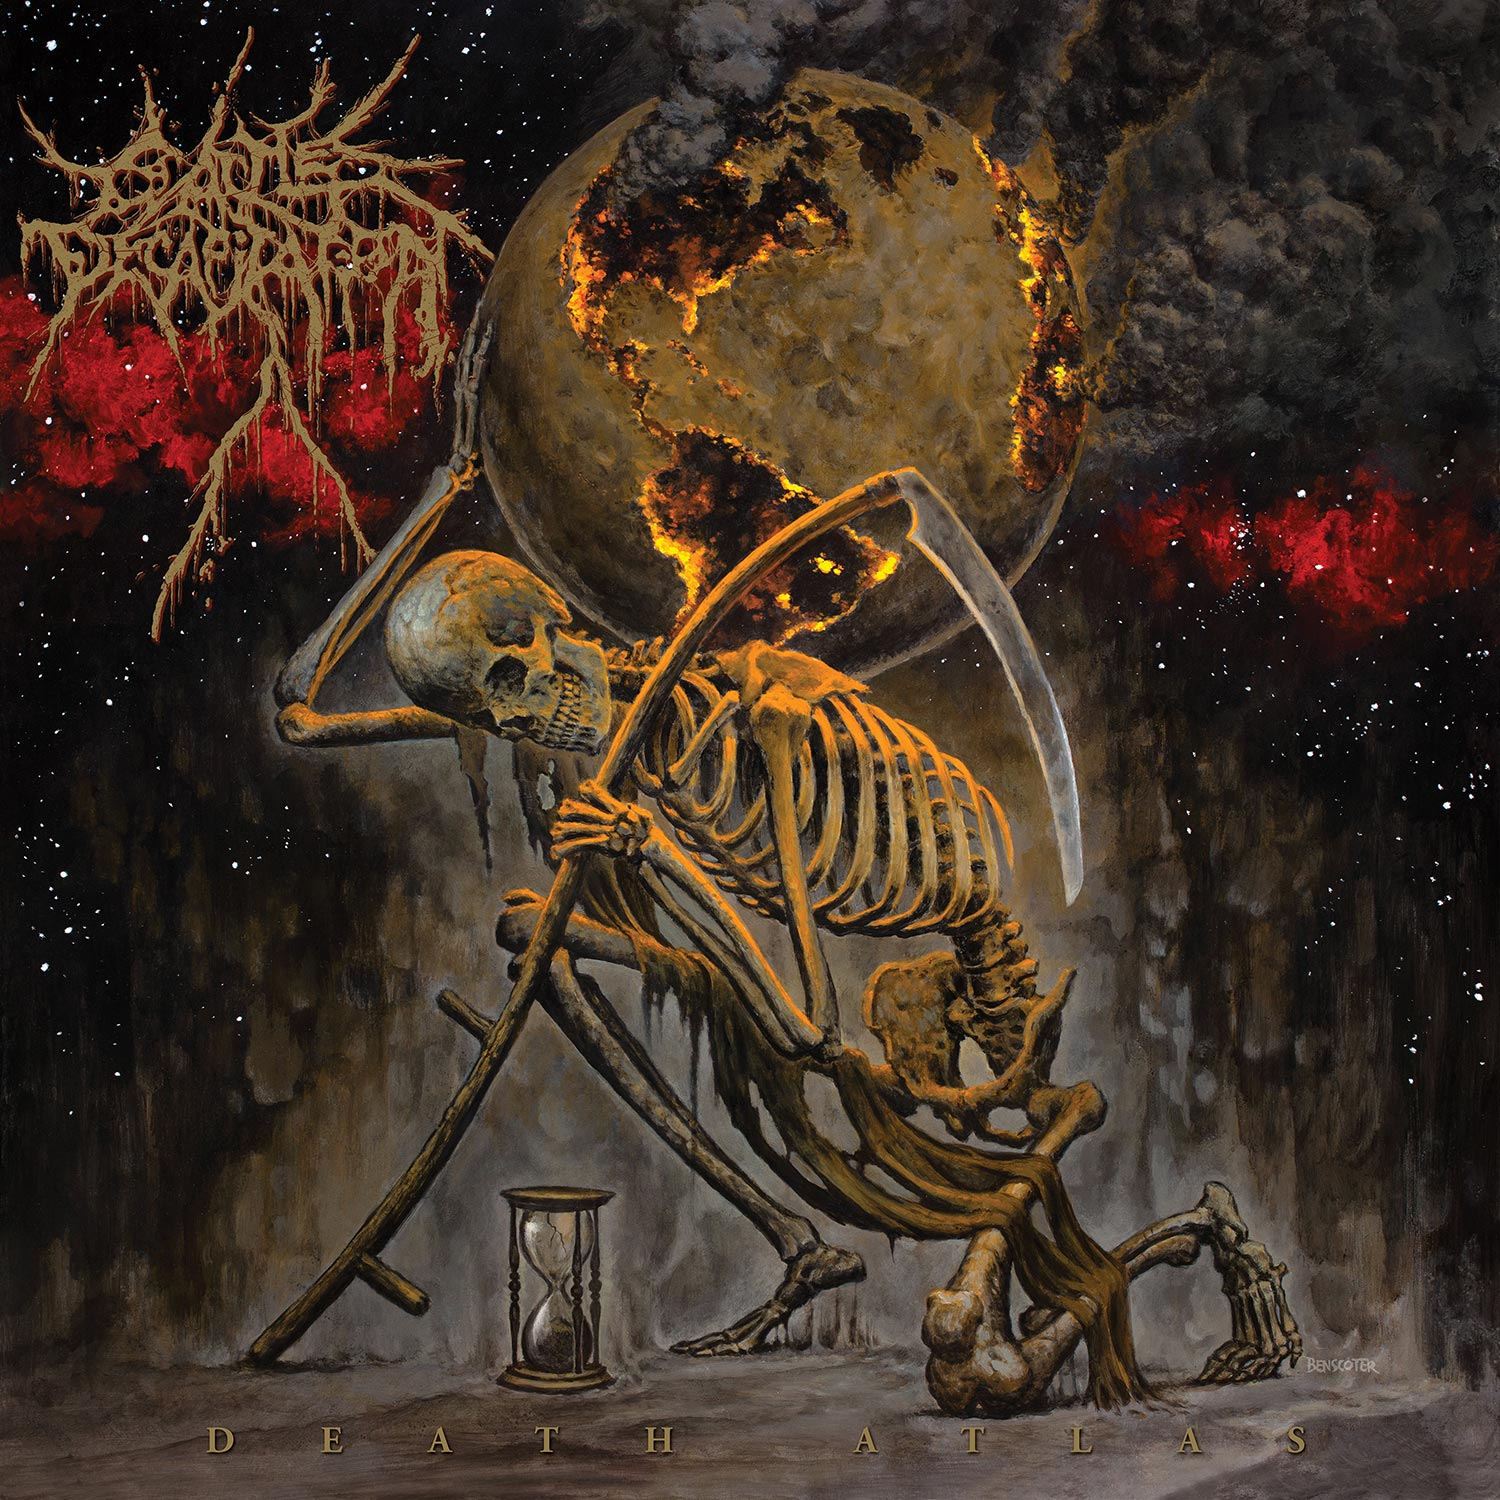 Death Atlas (Vomiting Lava)